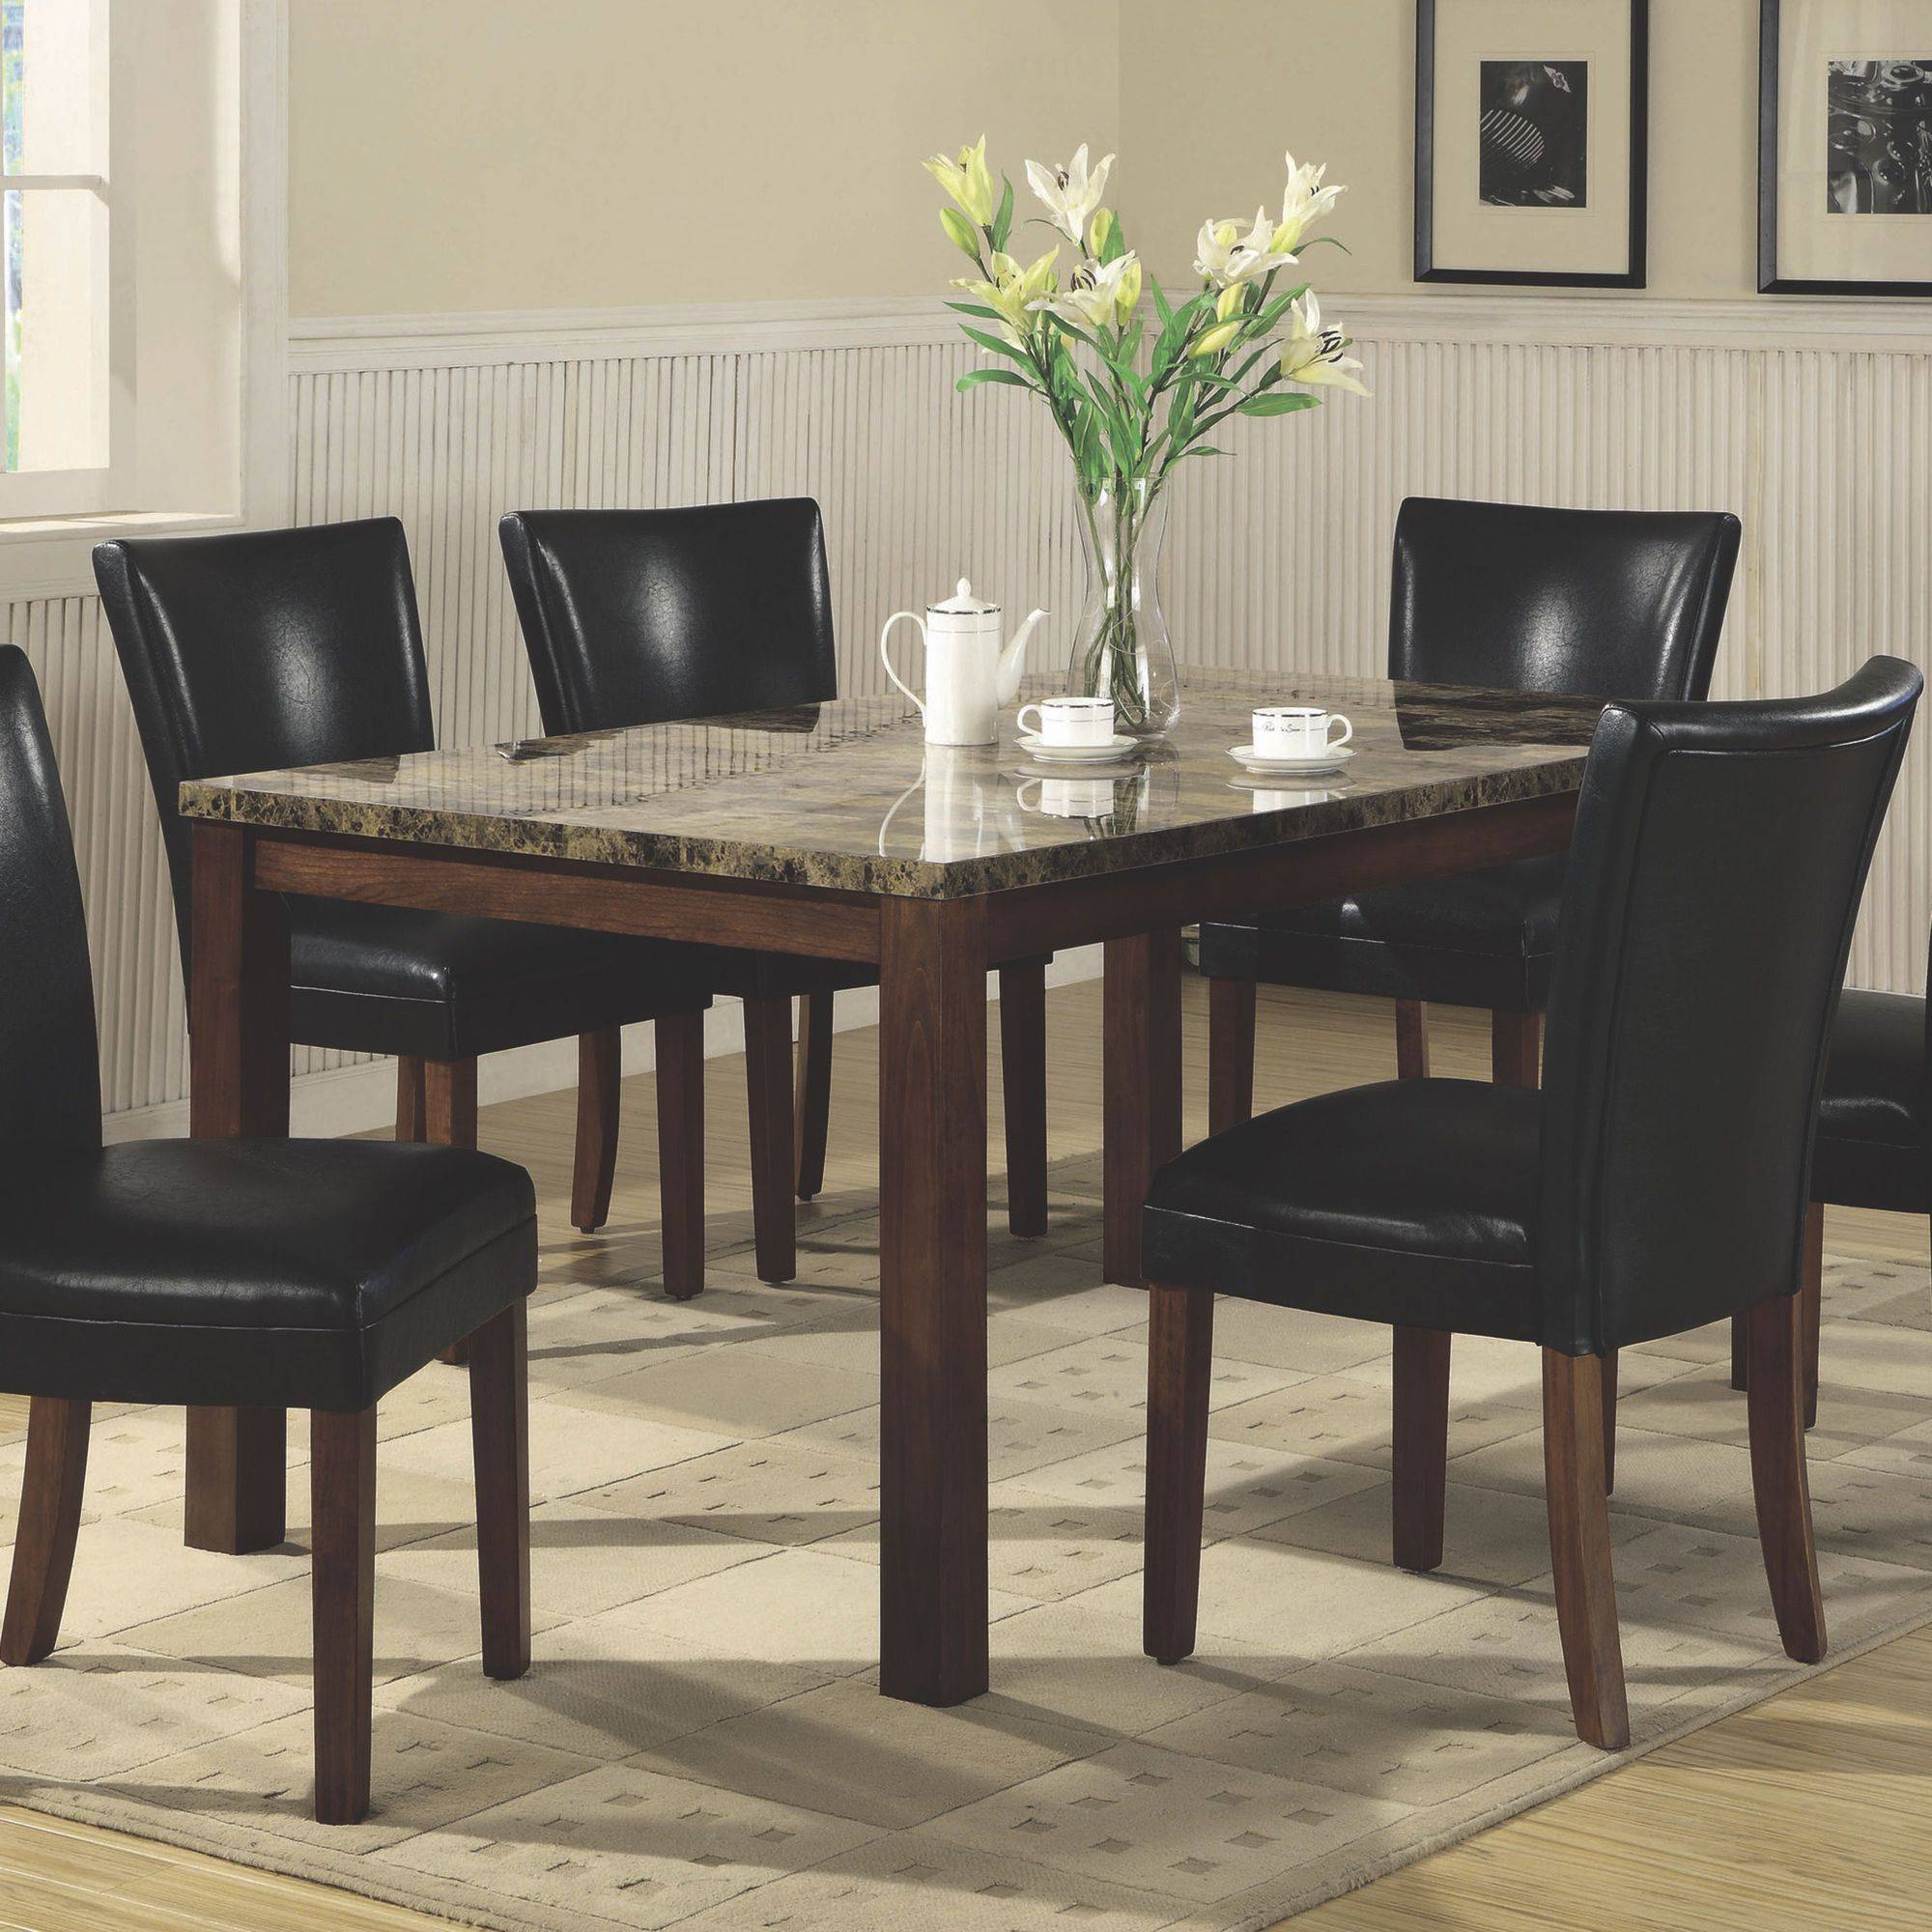 "Coaster Company Telegraph Faux Marble Dining Table, Brown ""Chairs Sold Separately"""